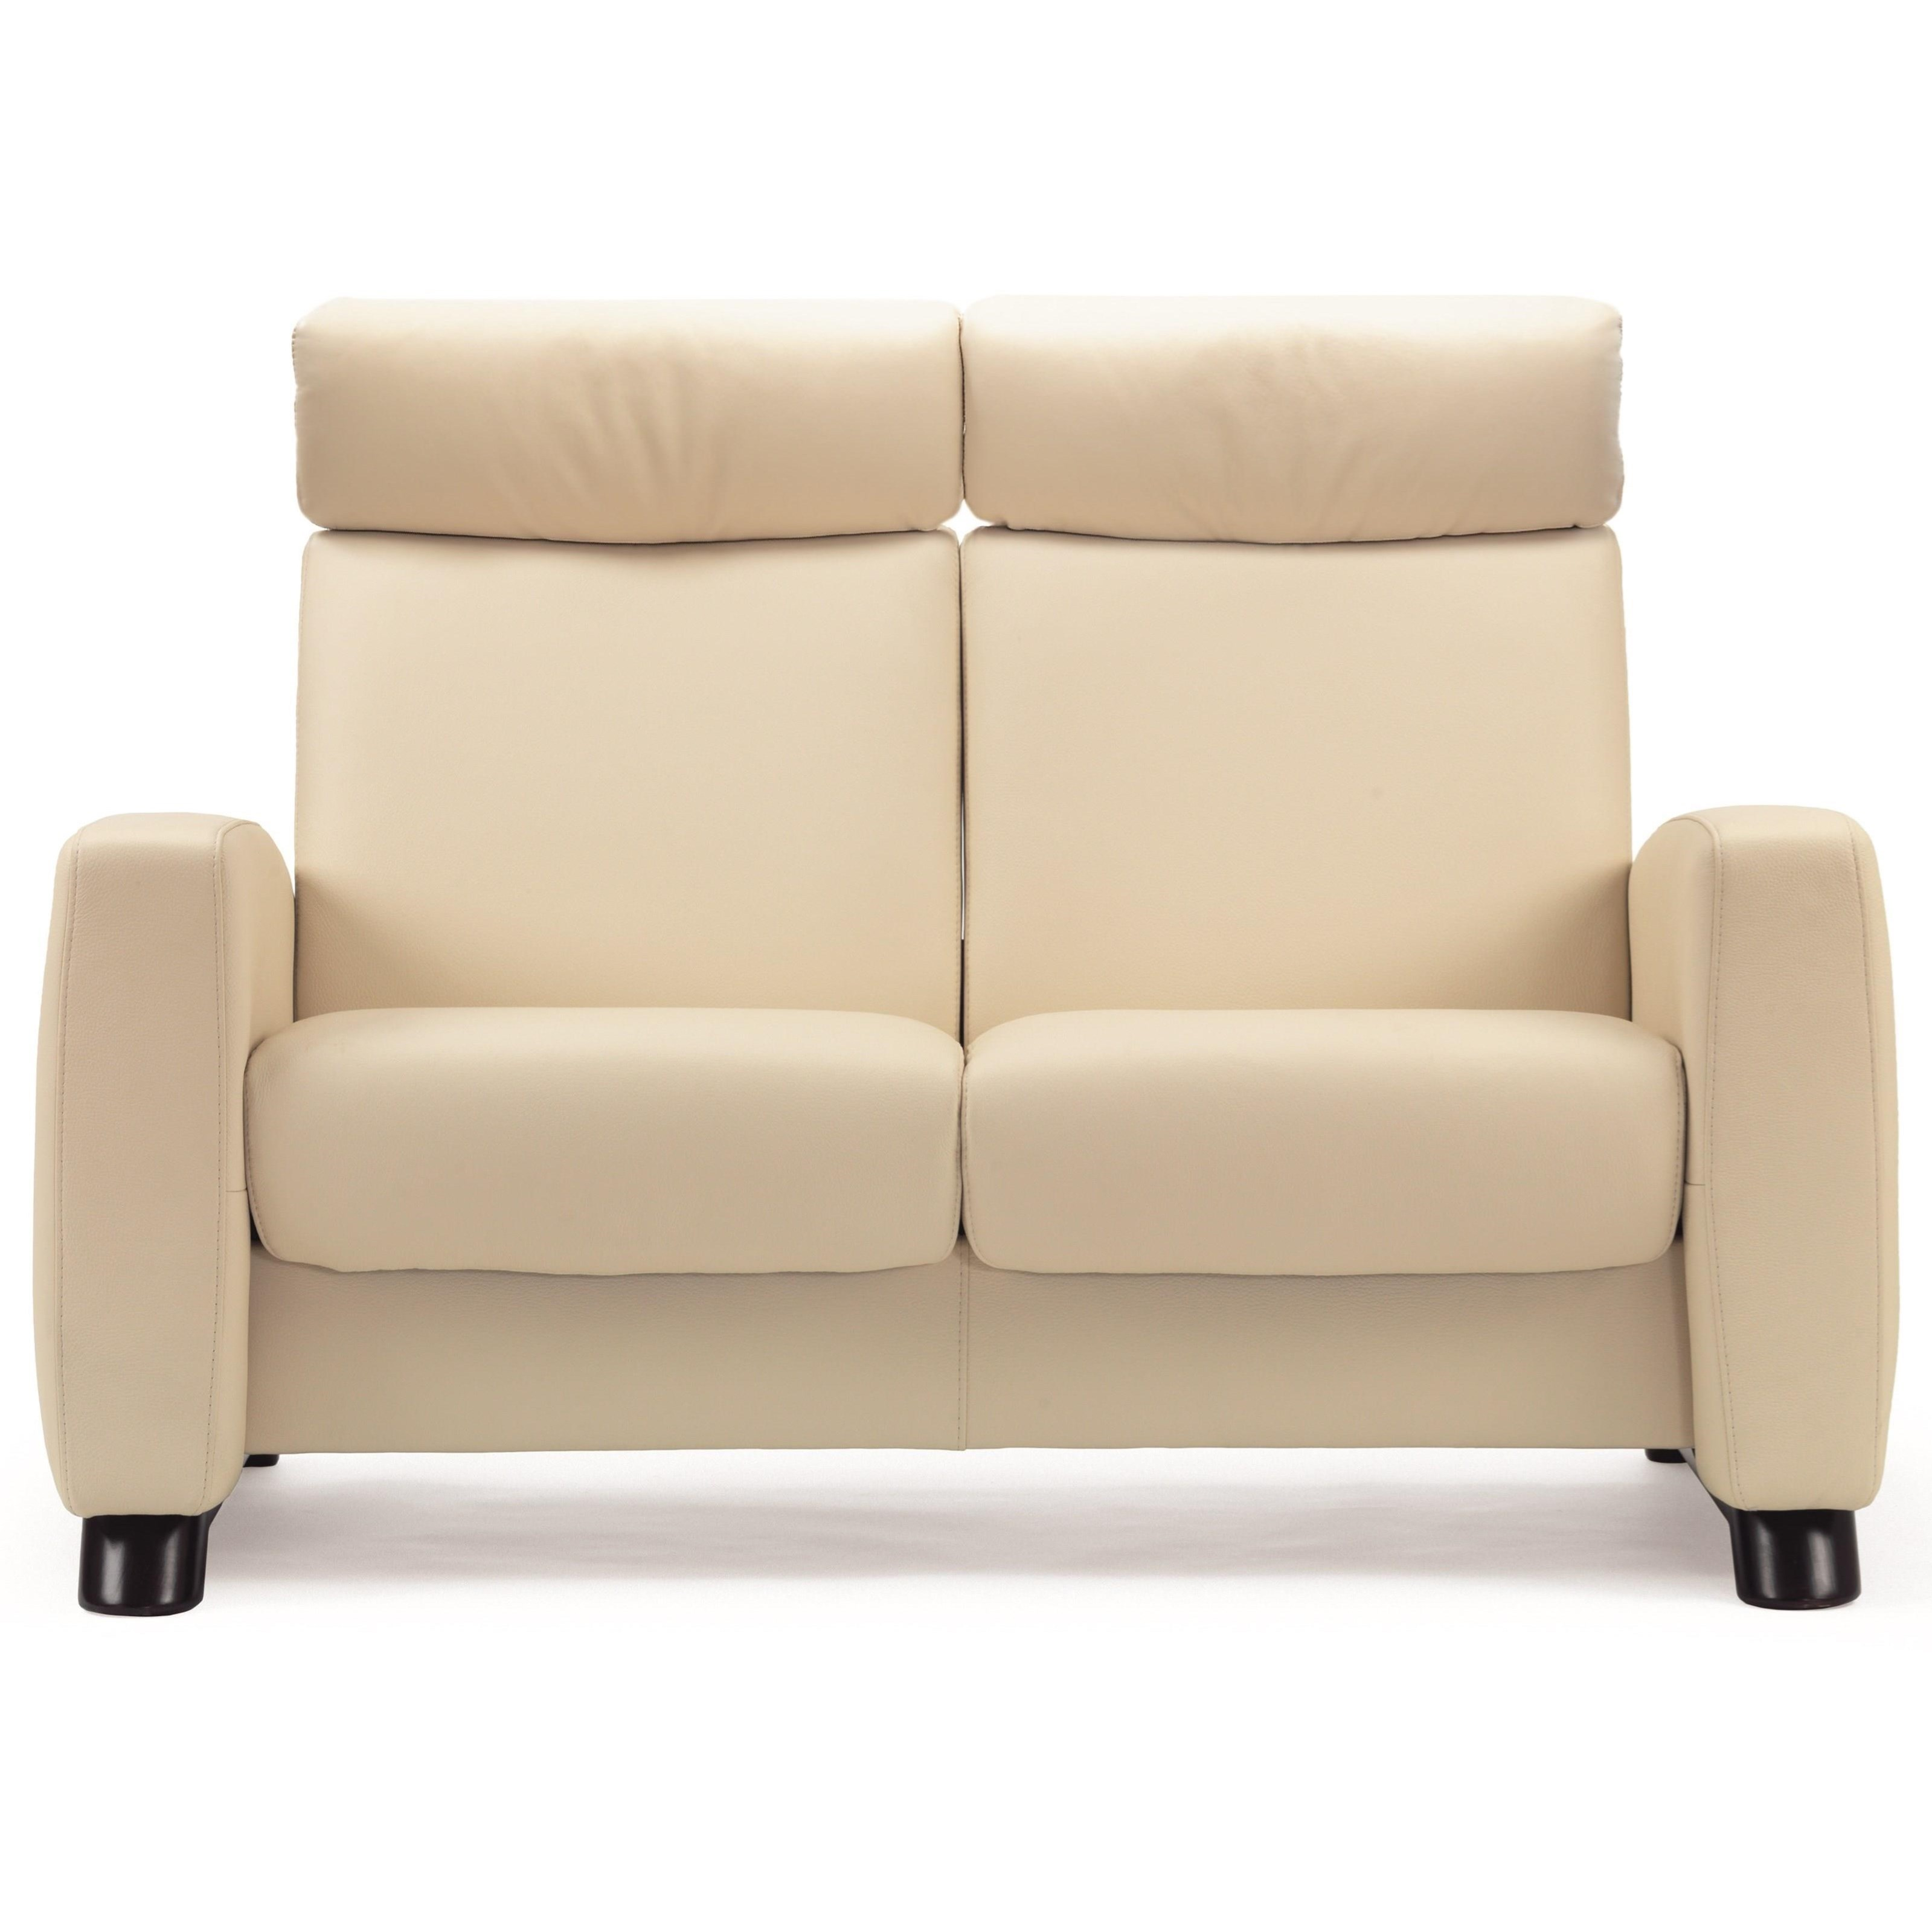 Arion 19 - A10 High-Back Reclining Loveseat by Stressless at Sprintz Furniture